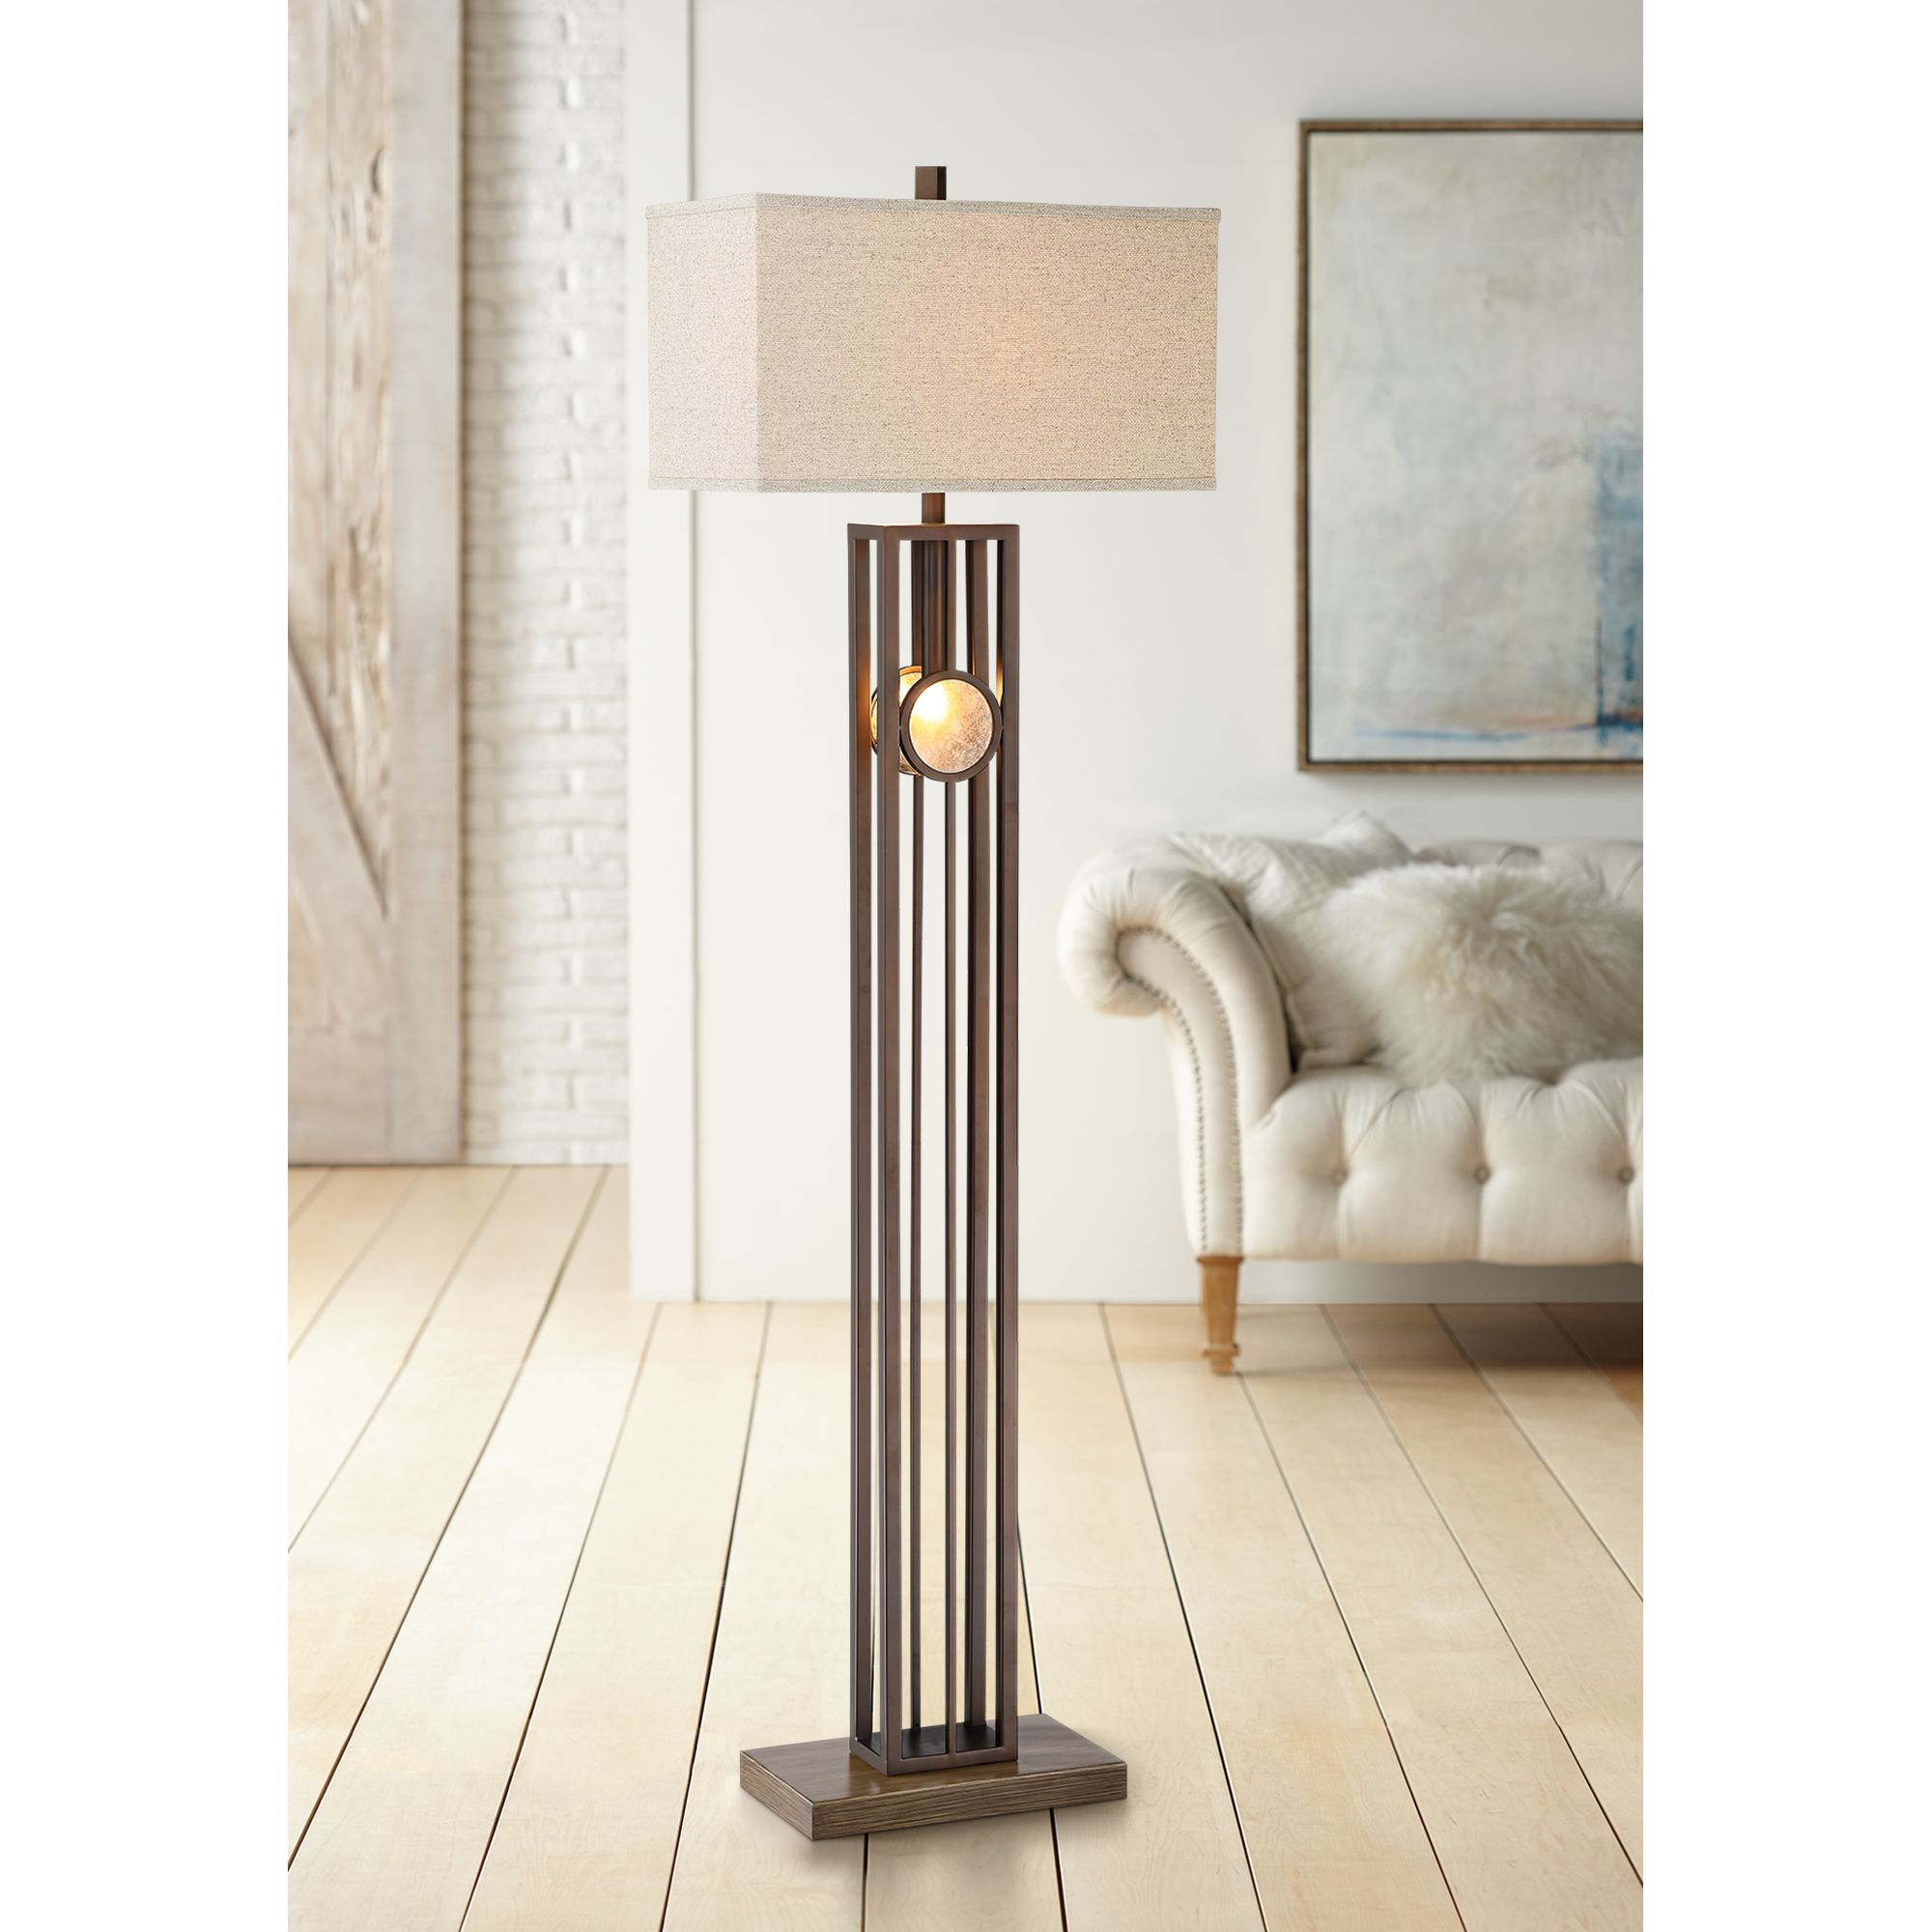 Franklin Iron Works Midland Oil-Rubbed Bronze Floor Lamp With Night Light by Franklin Iron Works